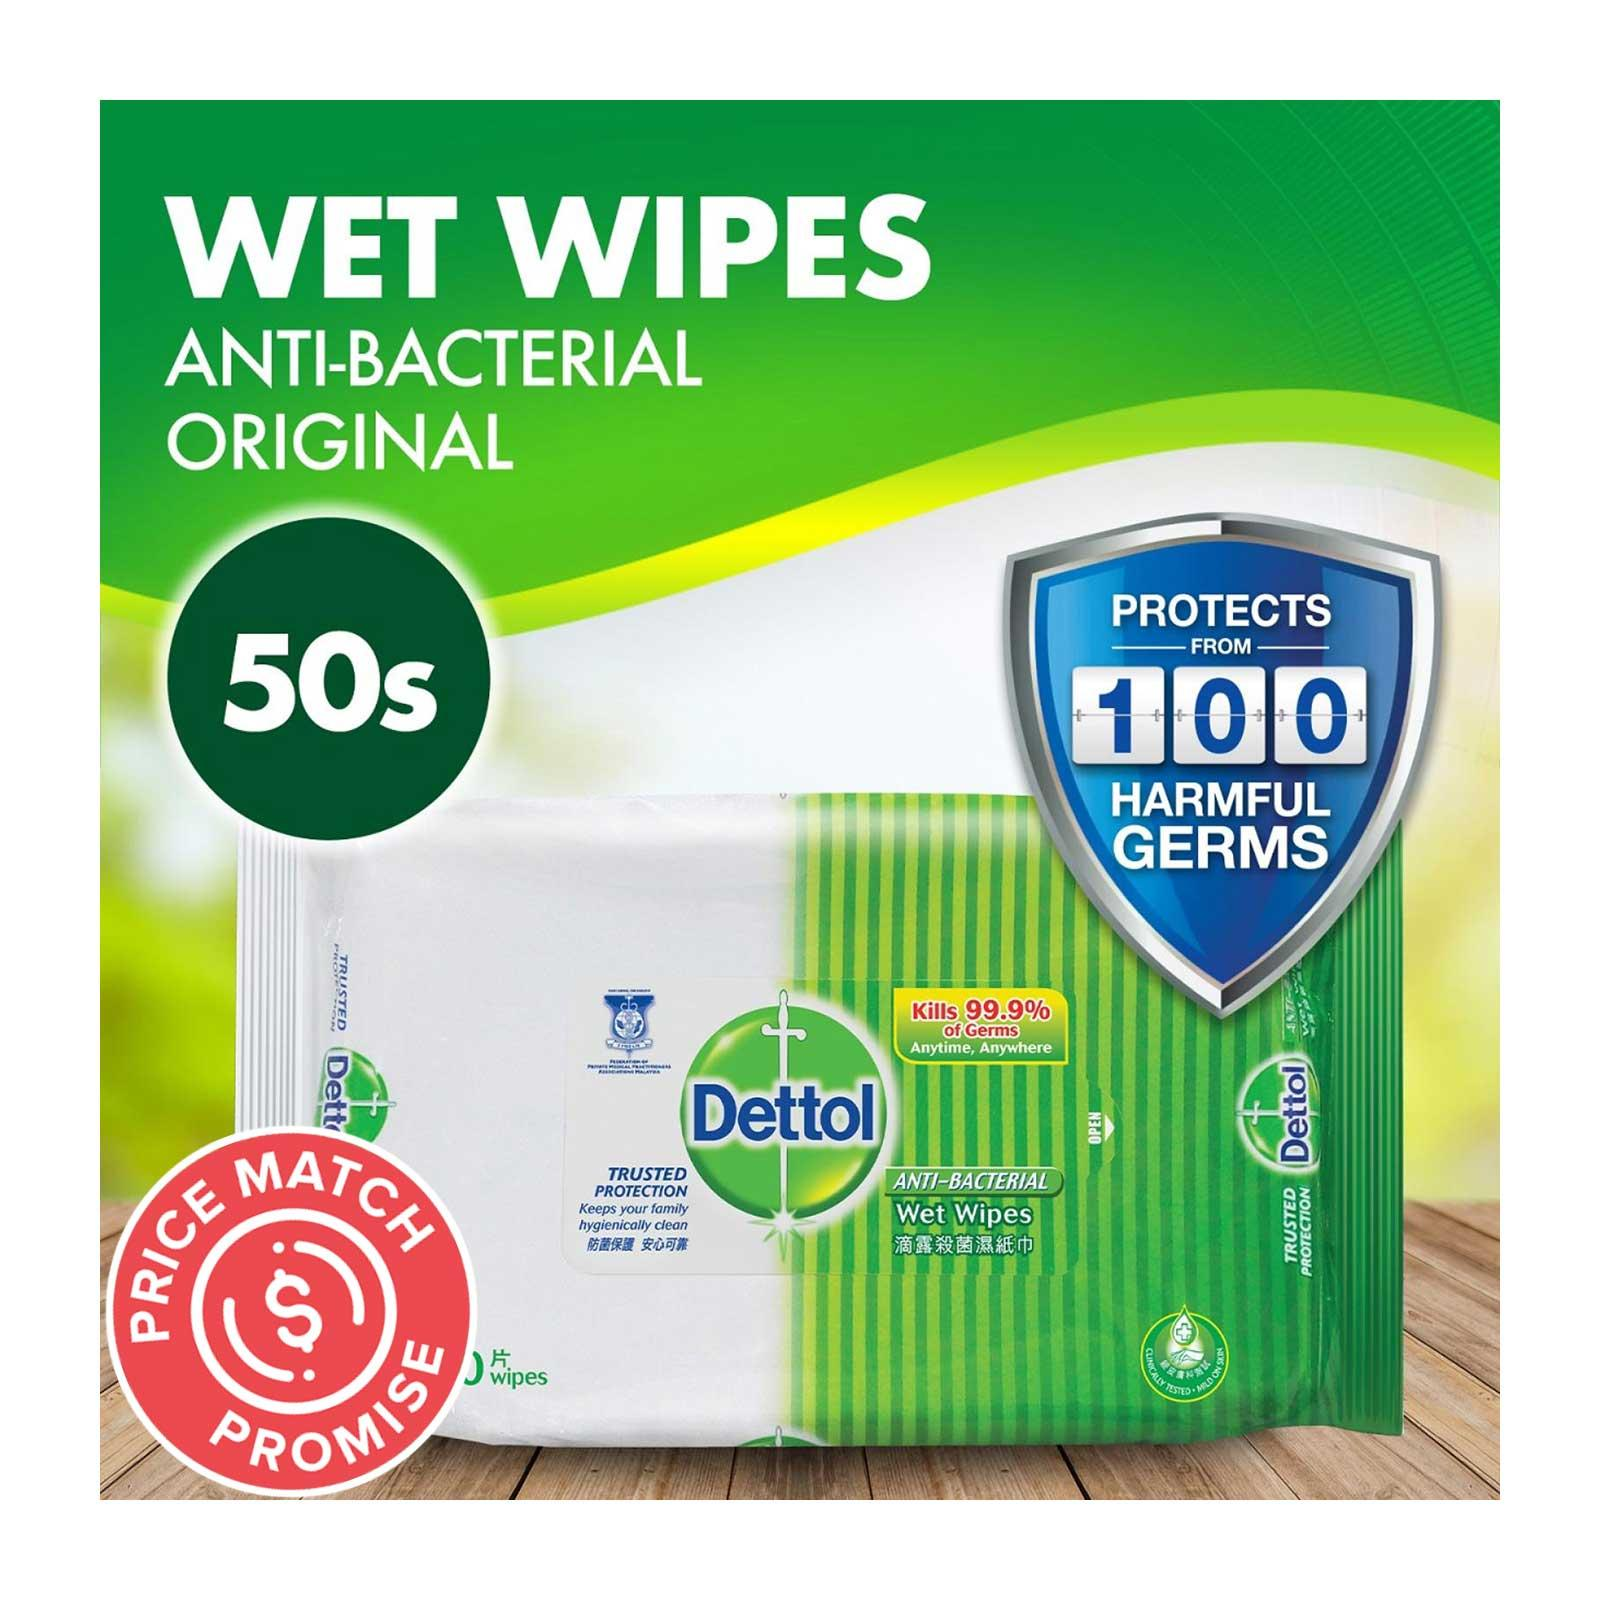 Dettol Anti-Bacterial Wet Wipes x50